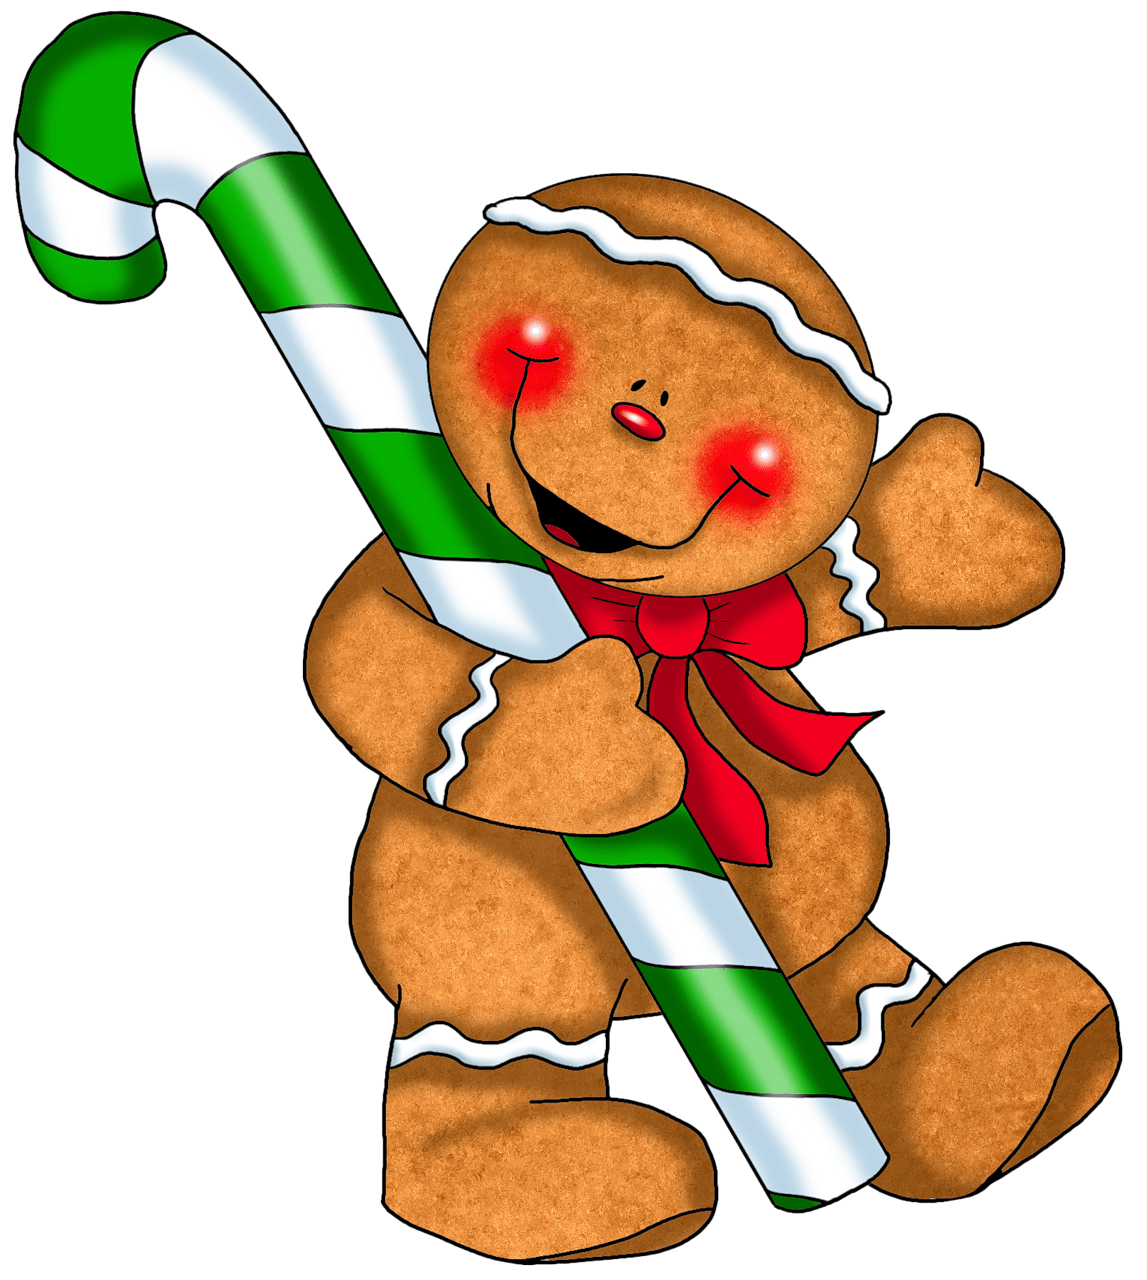 Candy cane clip art clipart clipartix 2 A Very Merry